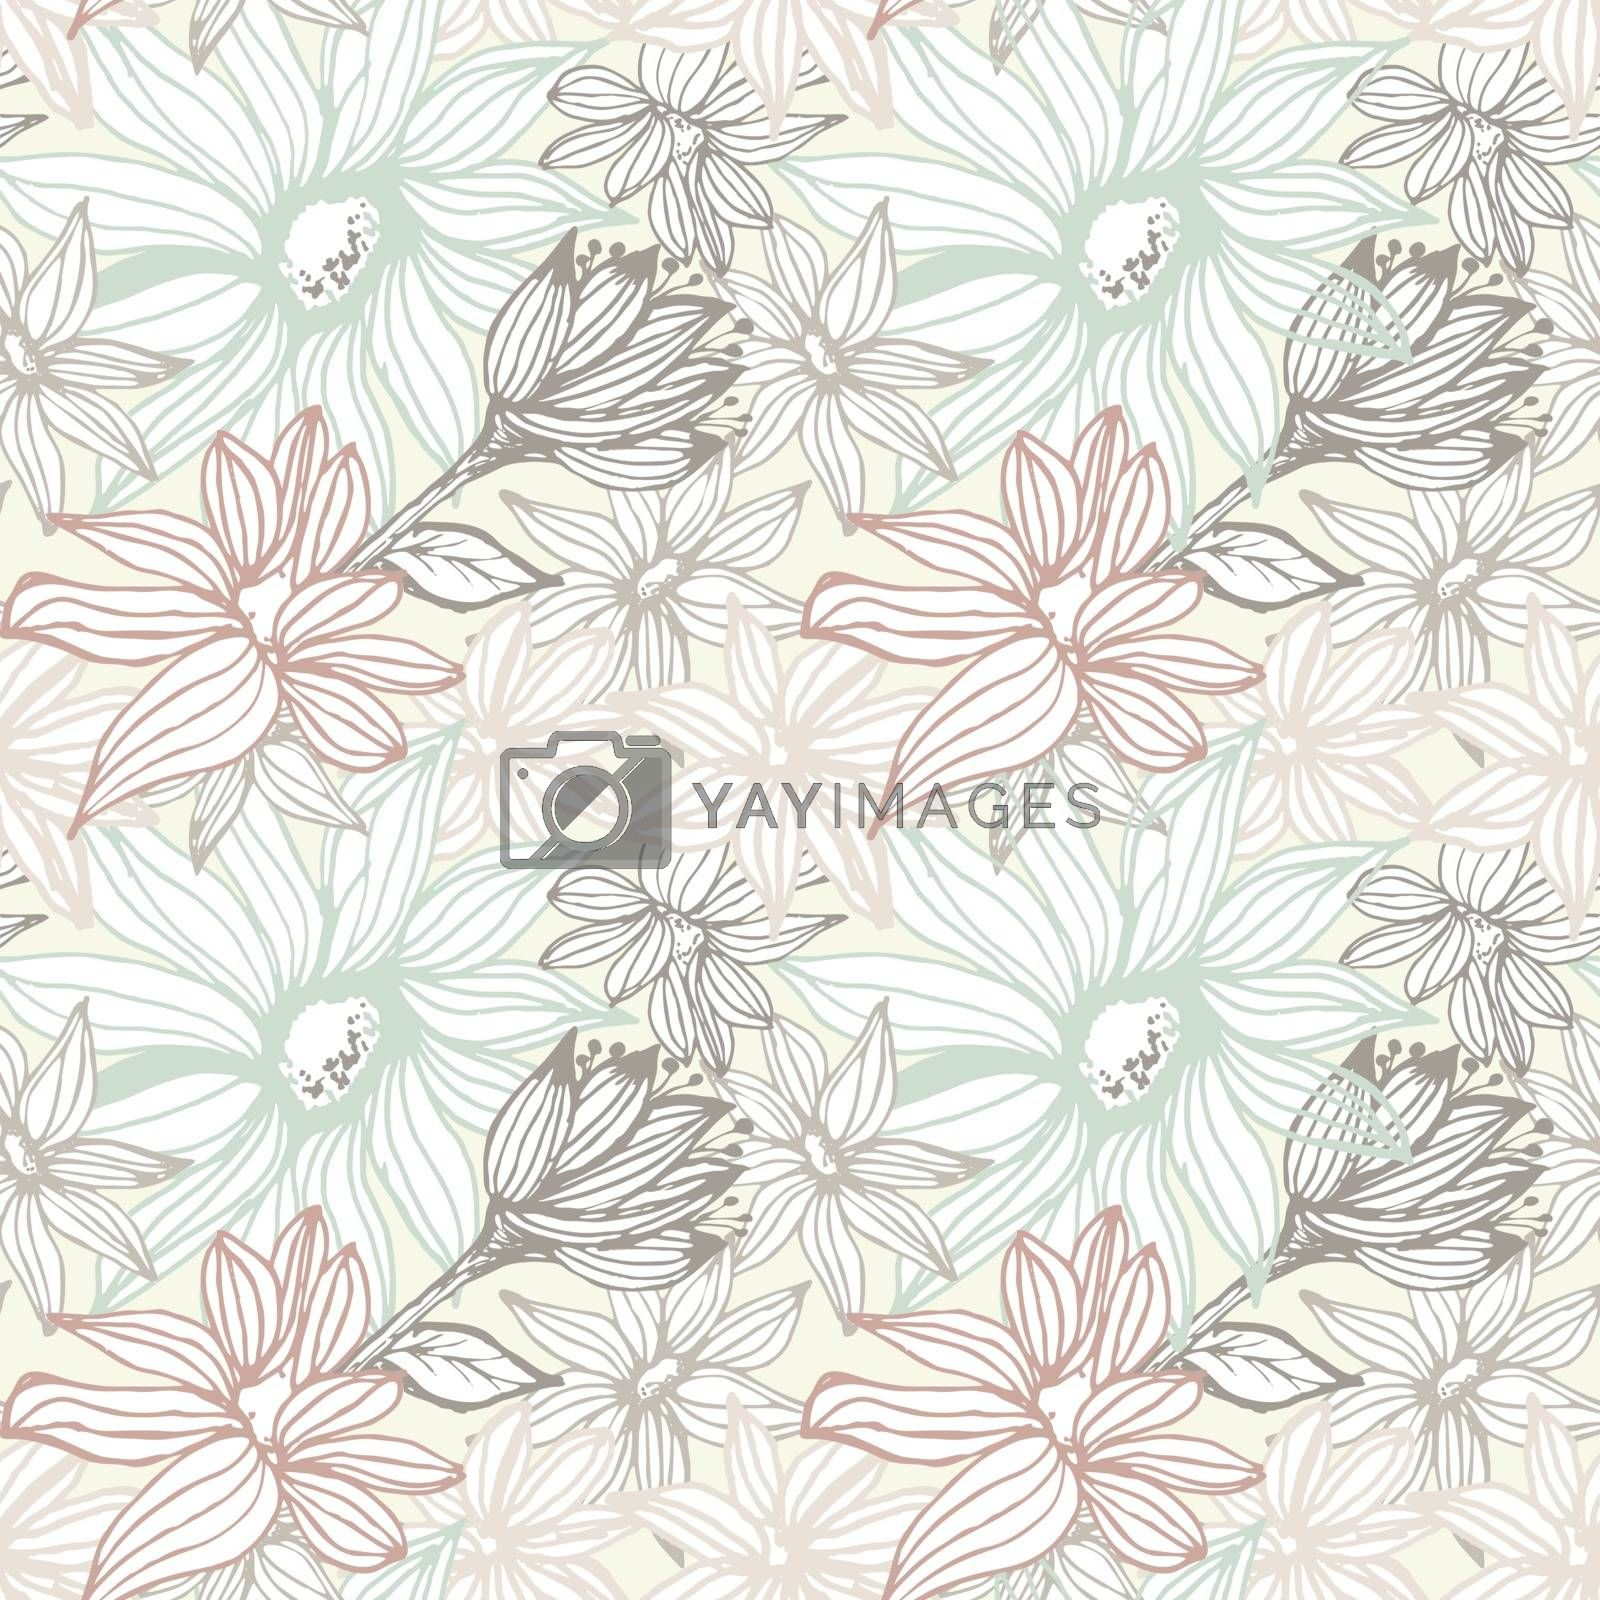 Elegant seamless pattern with flowers. Vector illustration